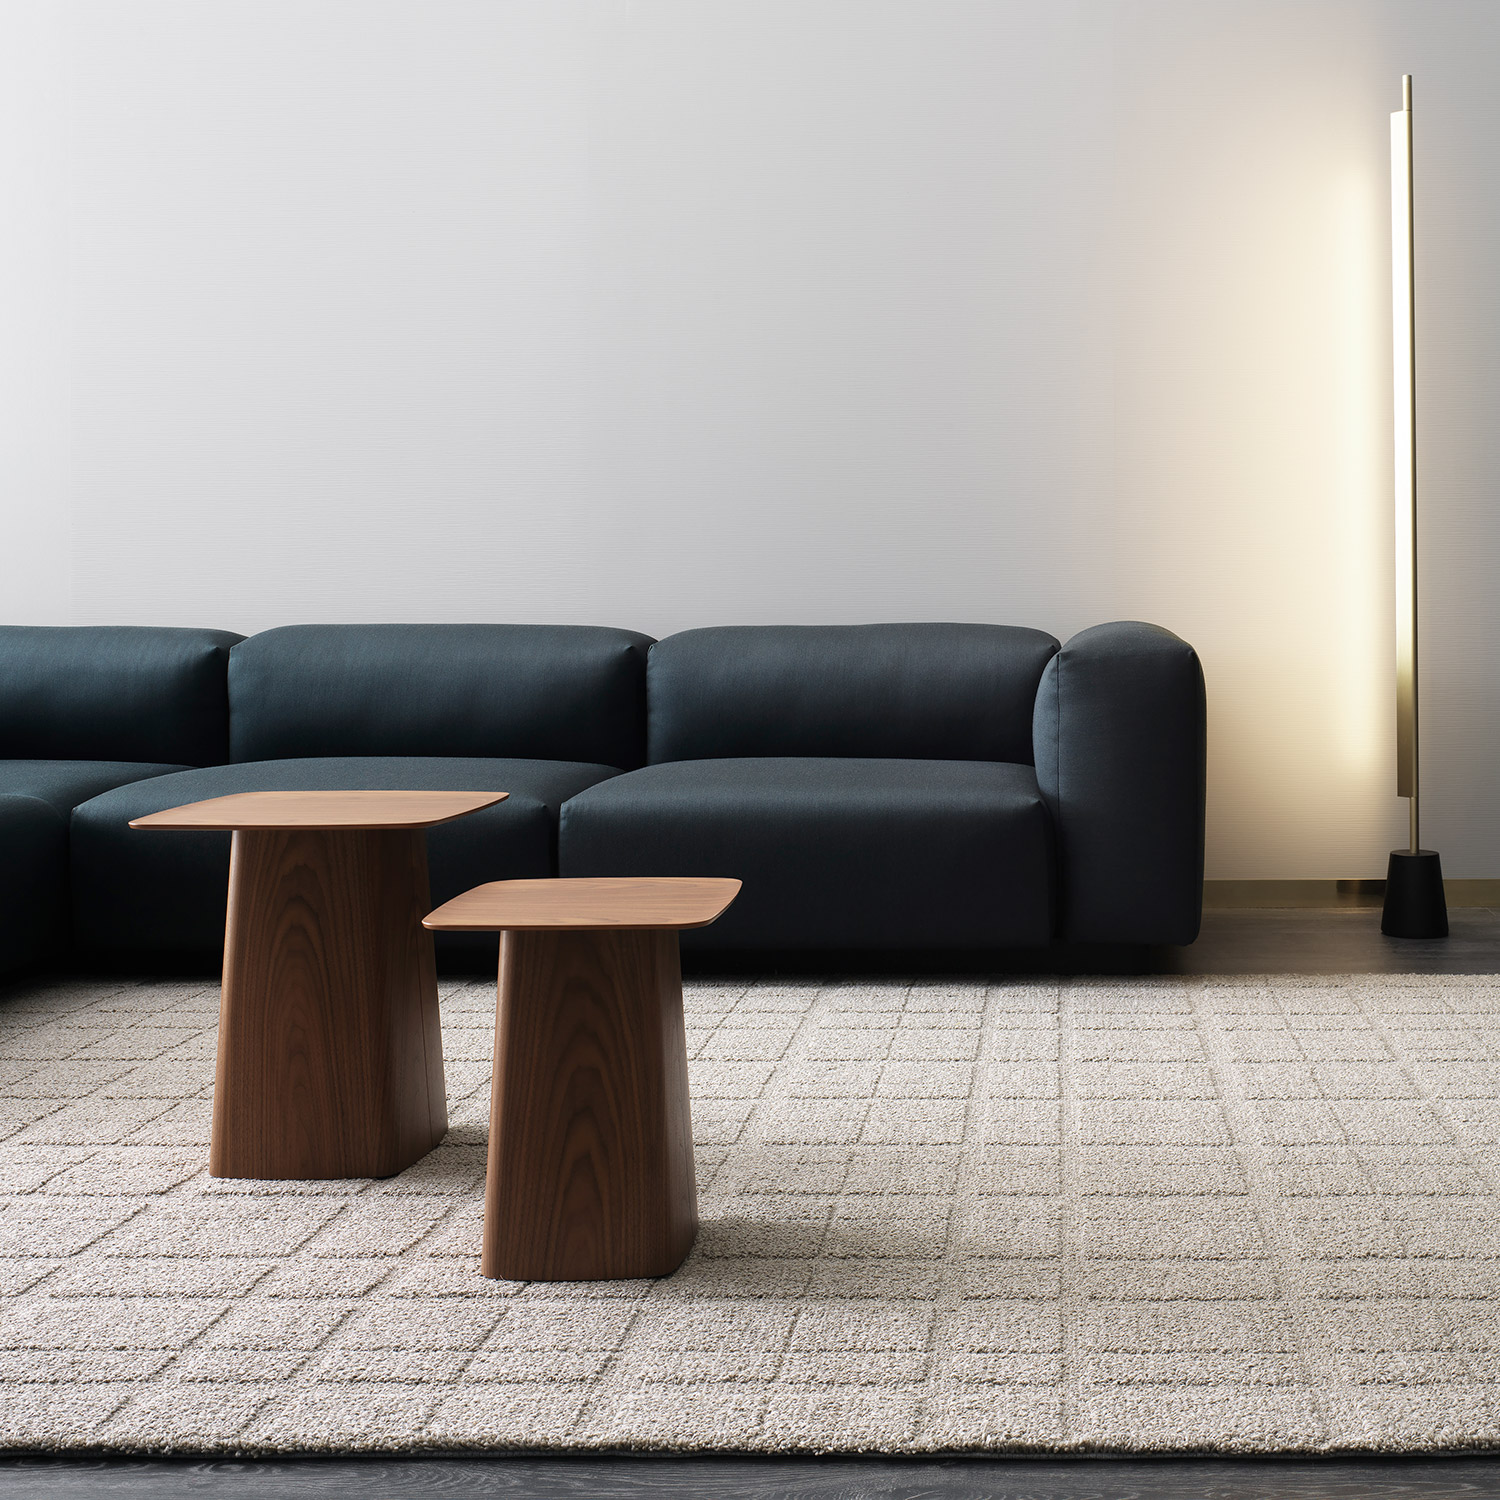 neutral wool rug, low navy sofa and modern wooden coffee tables